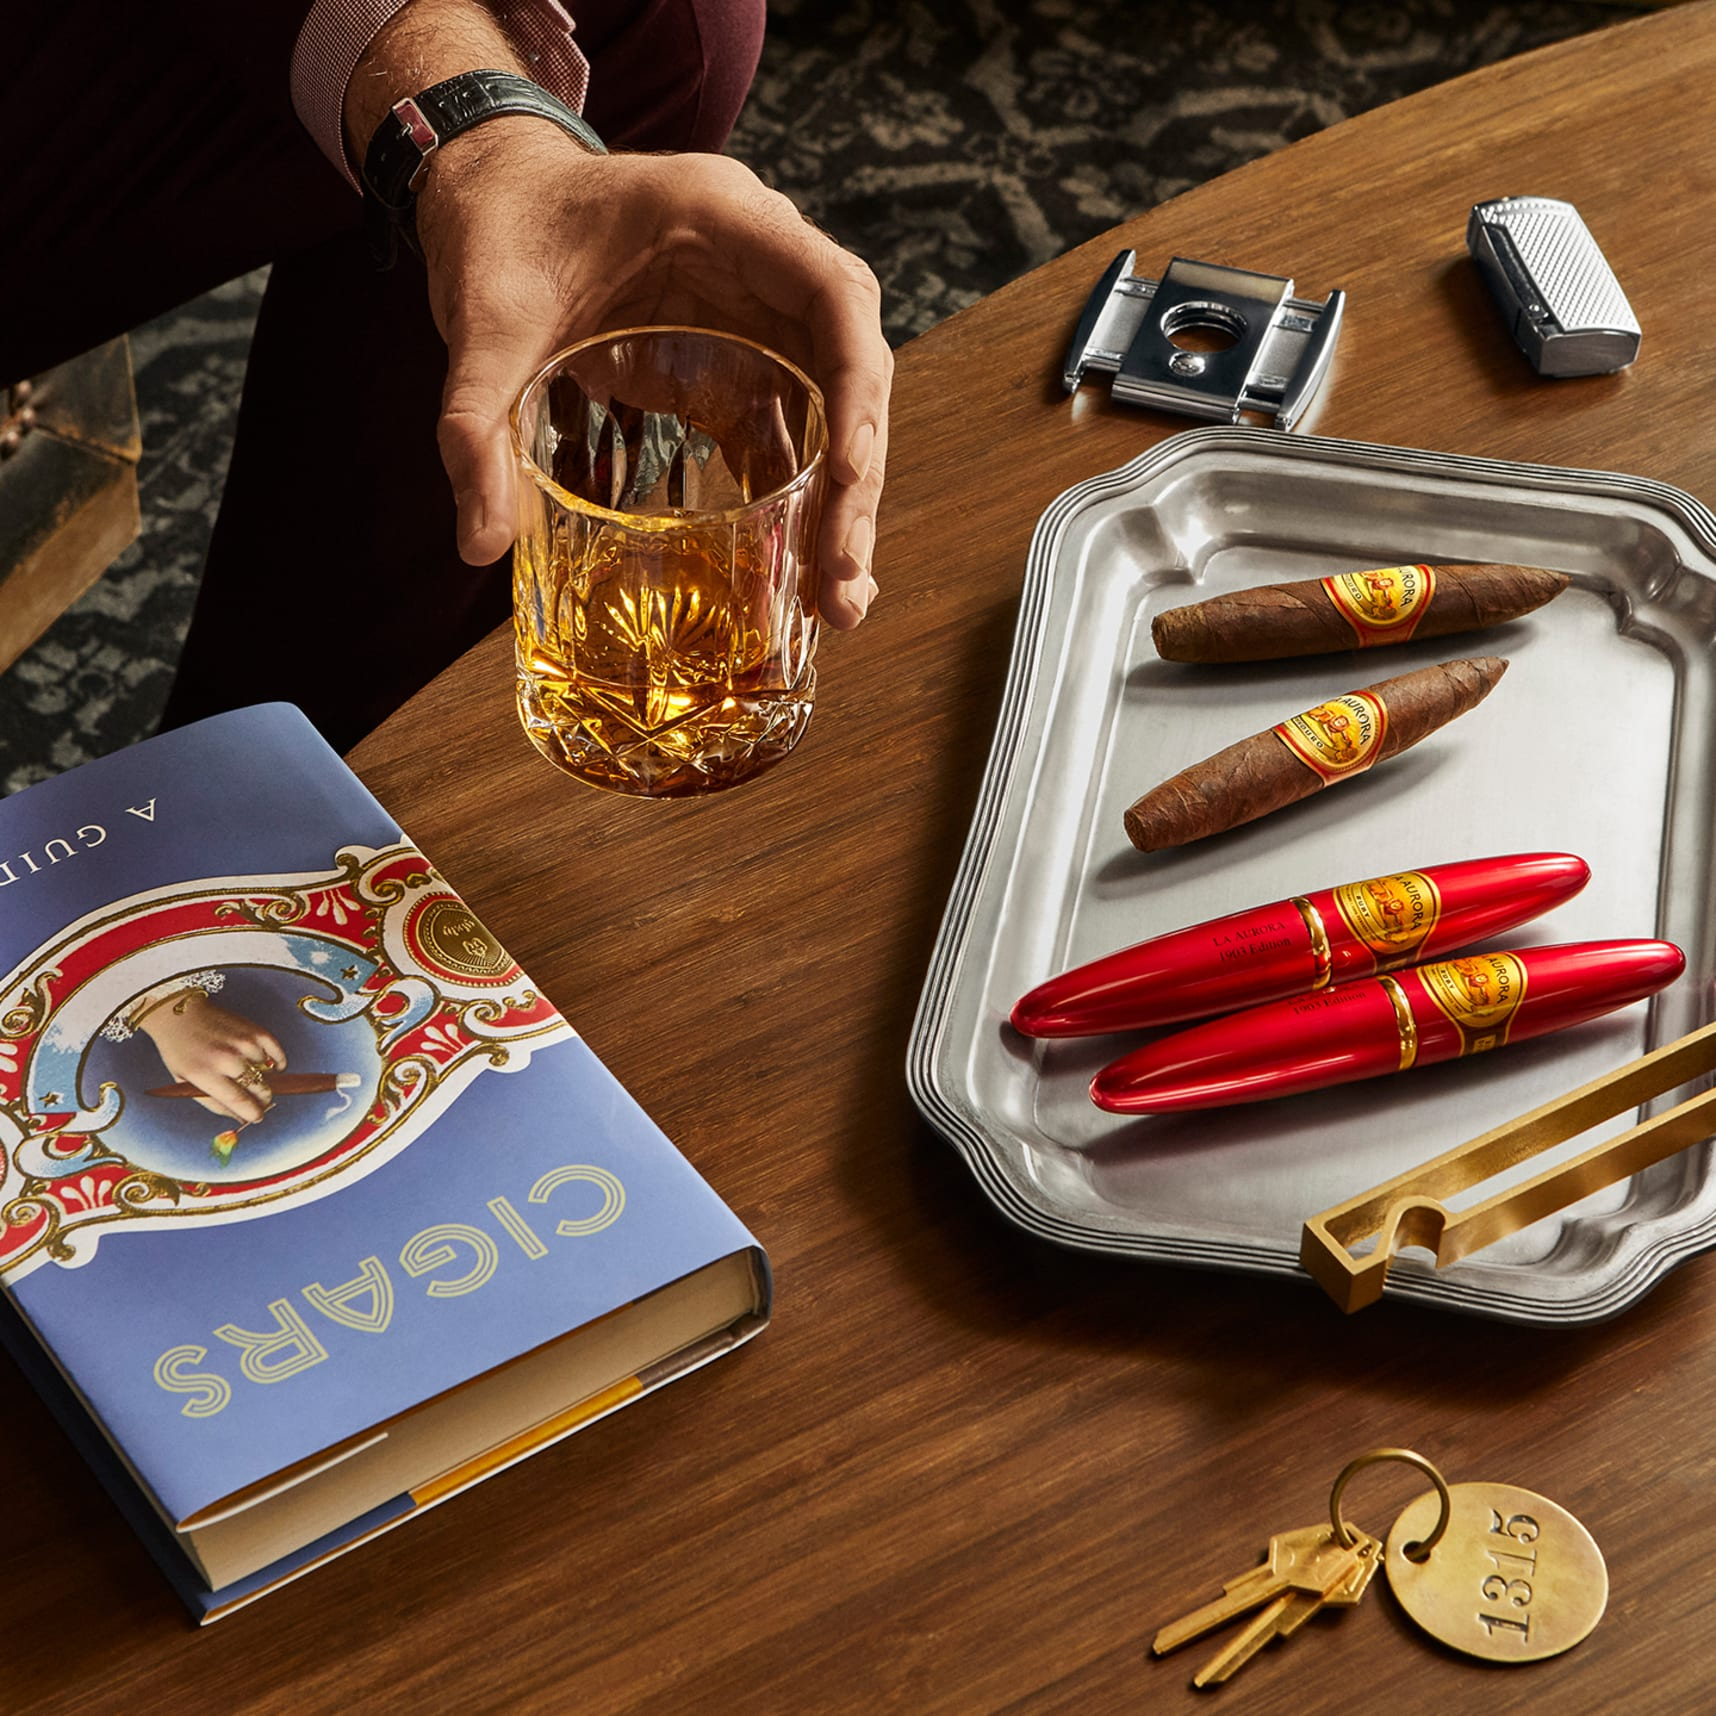 close up of tray with red cigar tubes and man's hand holding bourbon glass next to cigar book